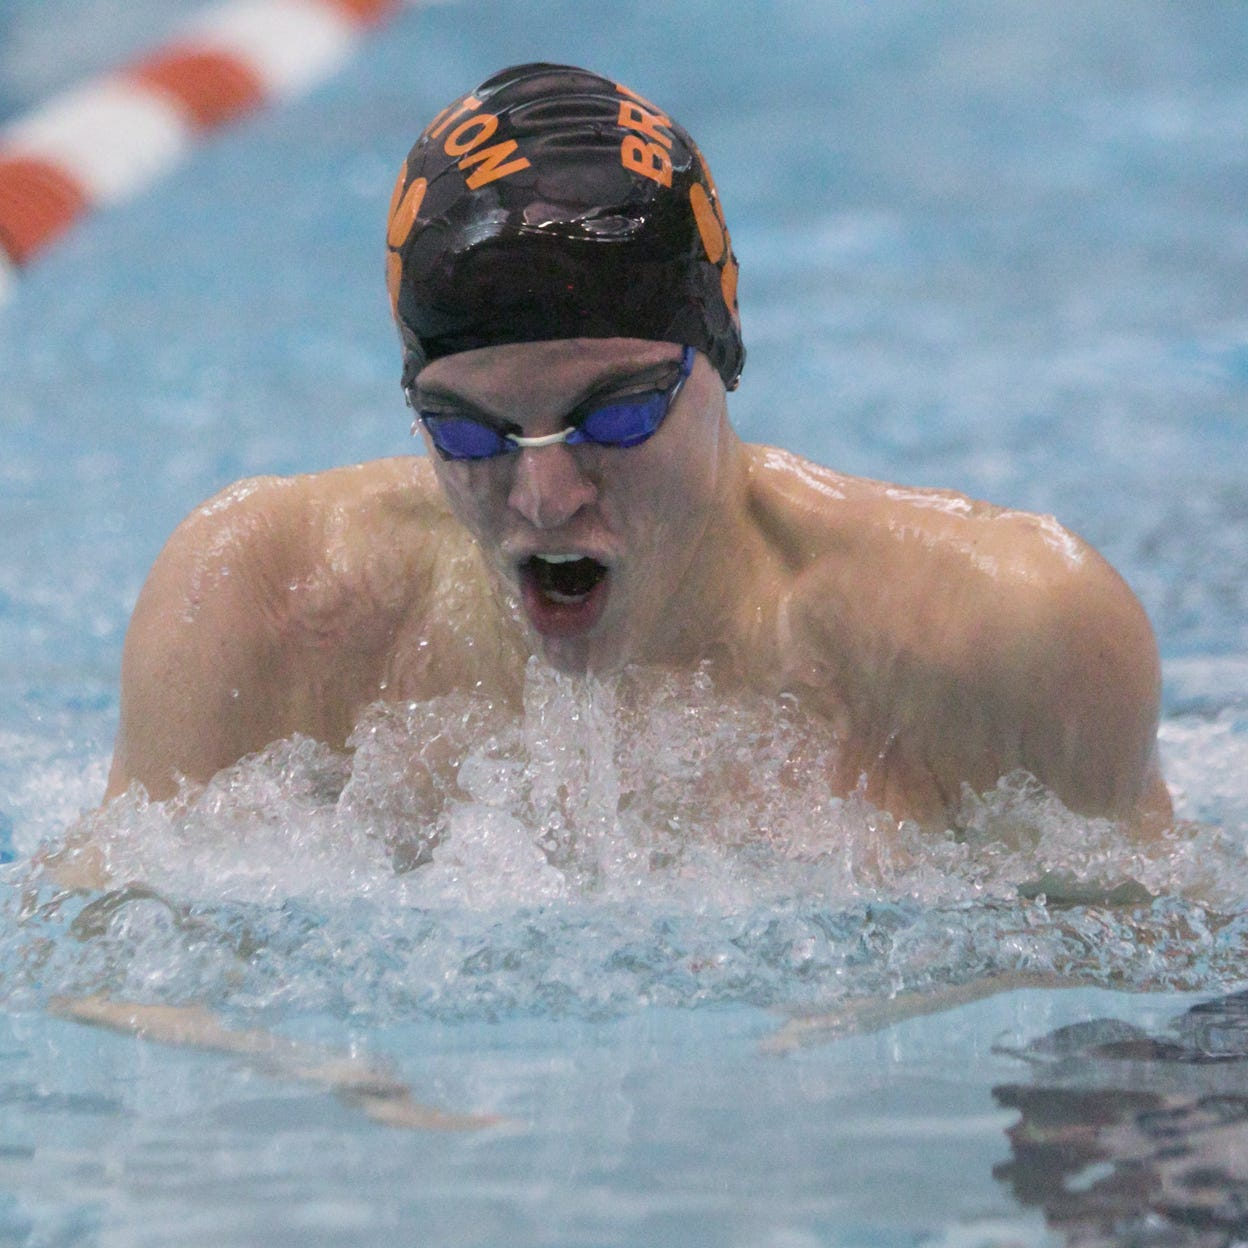 3 all-time greats shine as Brighton swims past Howell